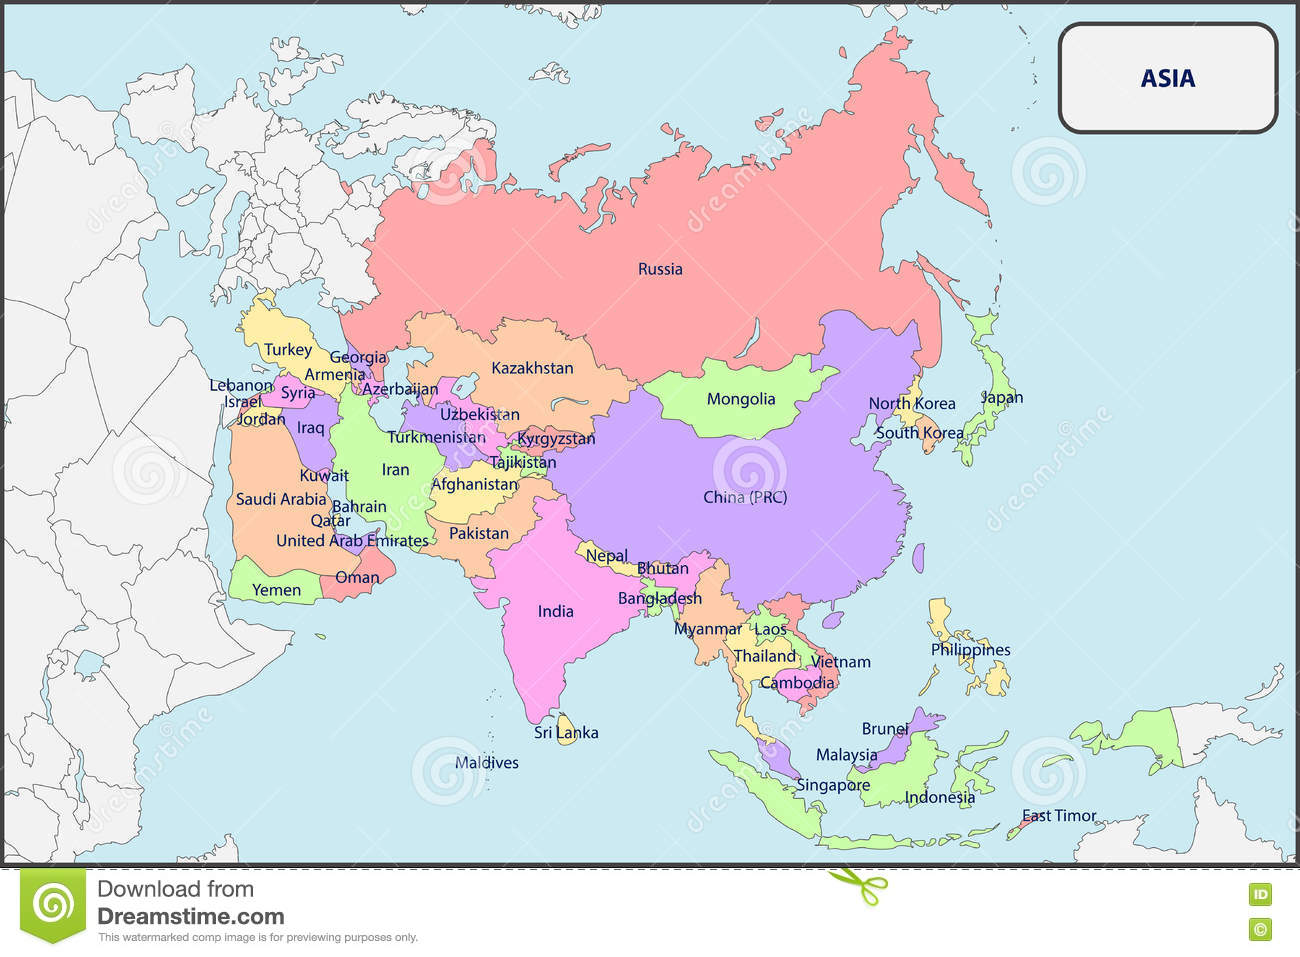 Map Of Asia Without Names.Political Map Of Asia With Names Stock Vector Illustration Of